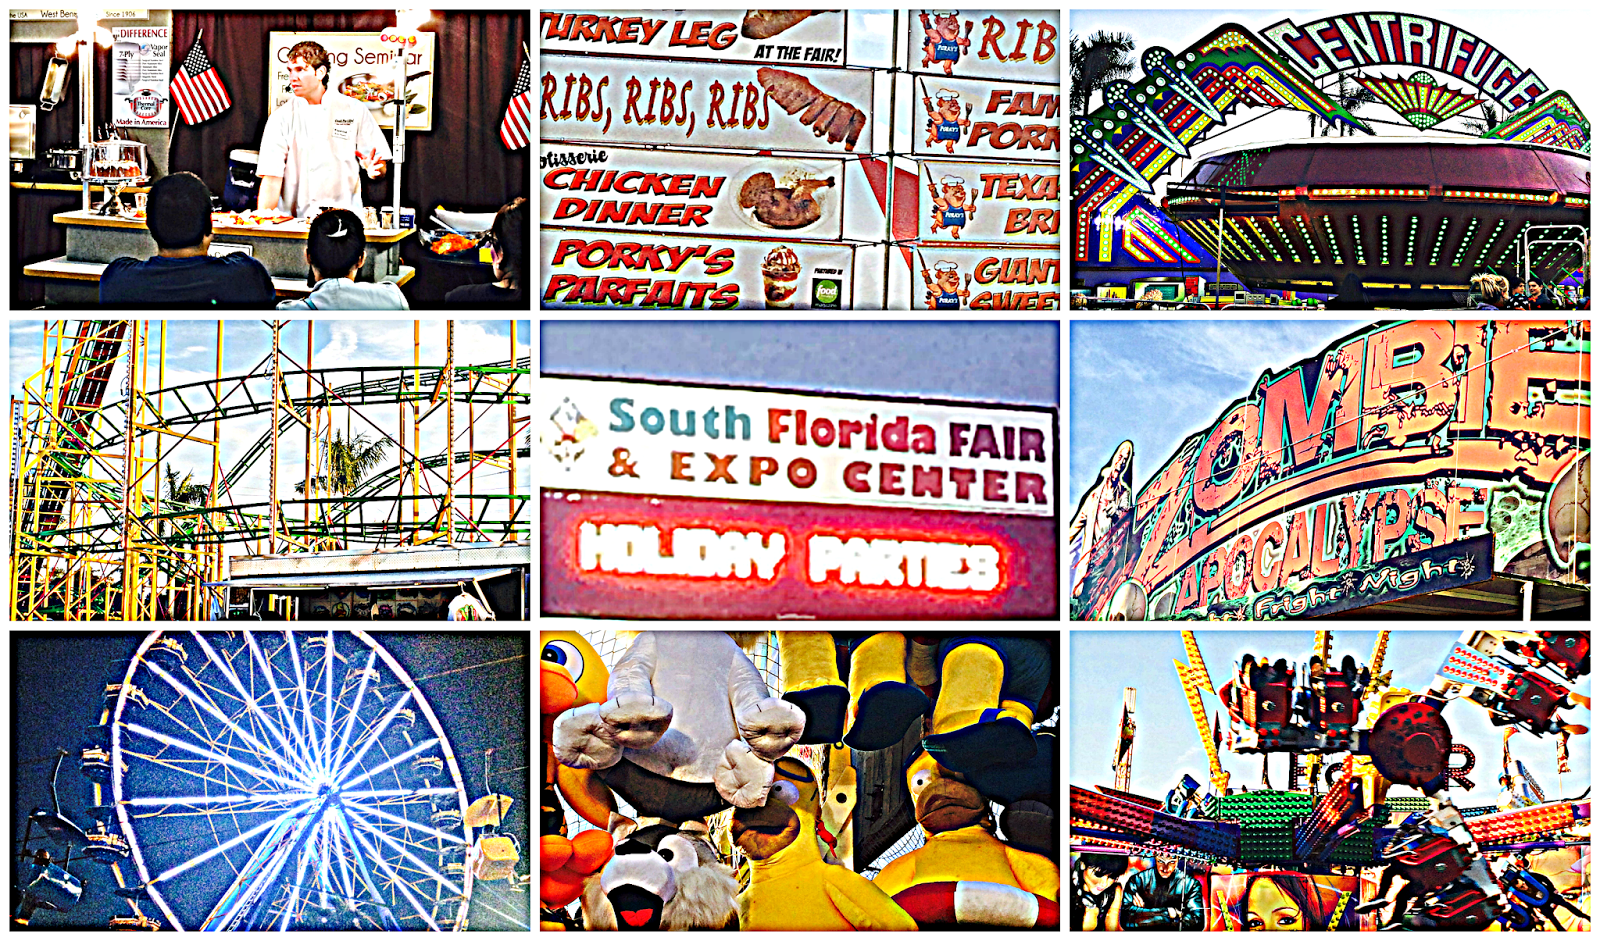 South Florida Fair-Events-Kids-Rides-Giveaway-Palm Beach- Florida,